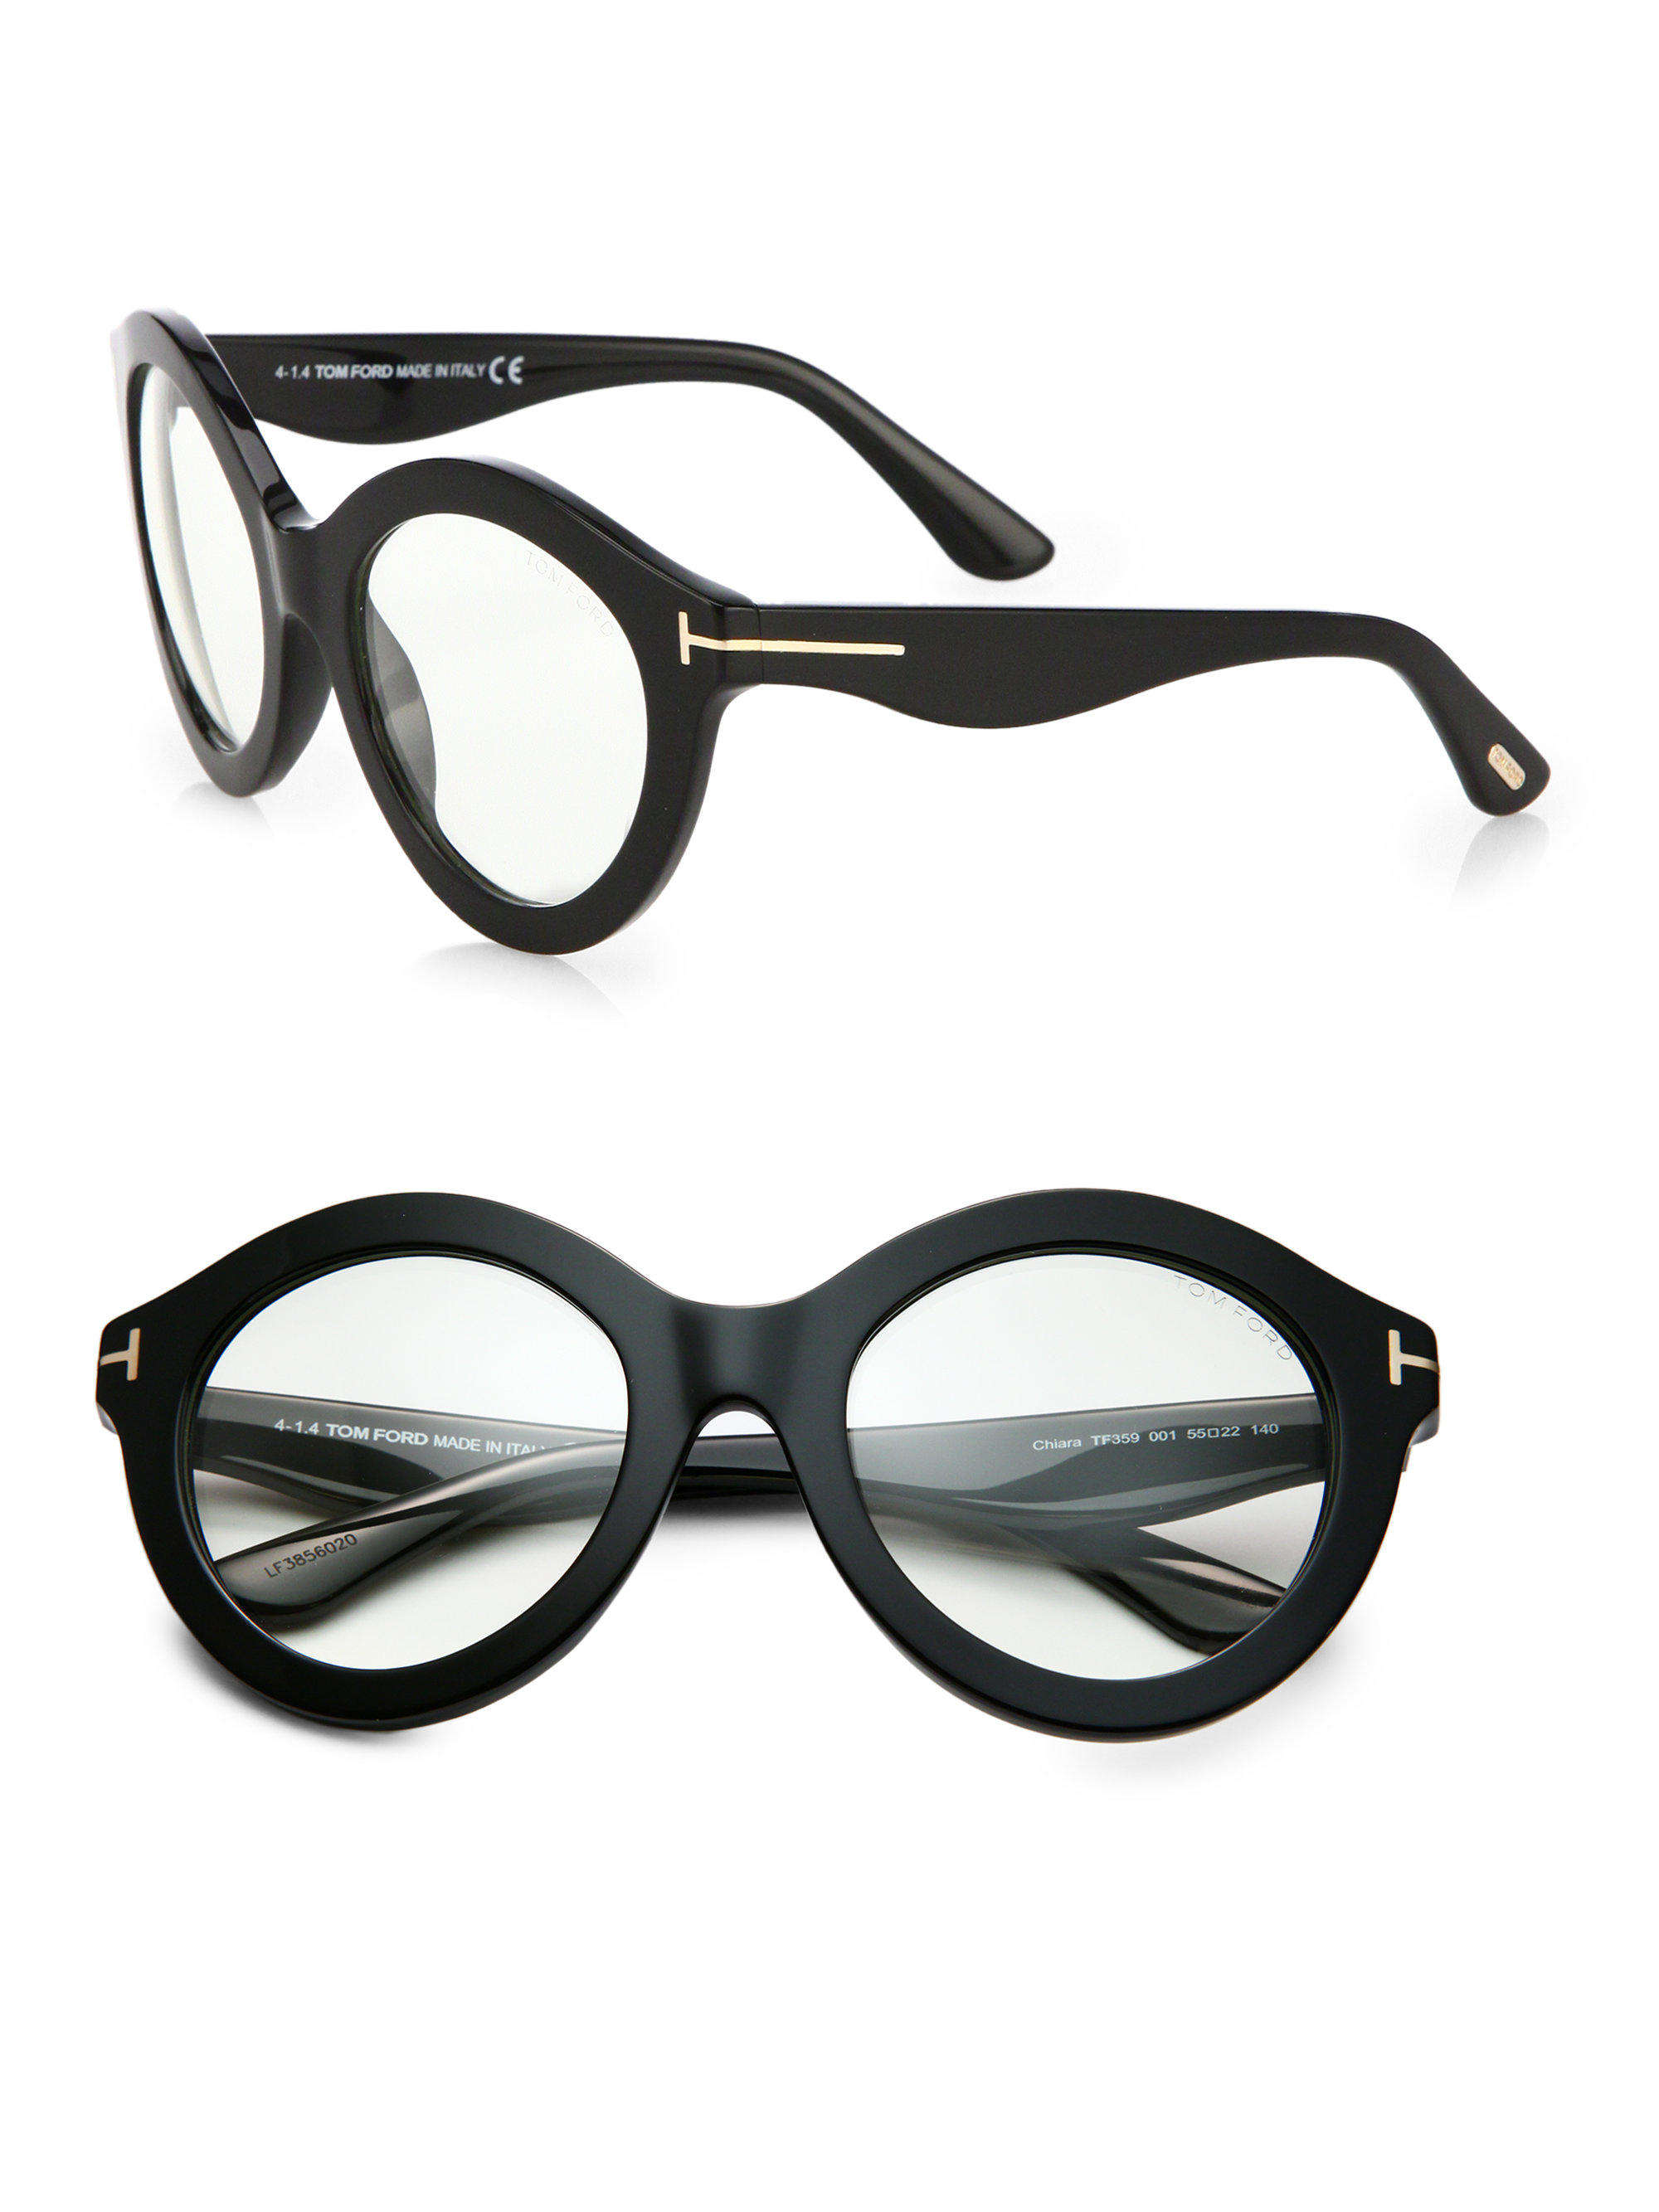 b5519df54cf6 Lyst - Tom Ford Exaggerated 55mm Round Optical Glasses in Black